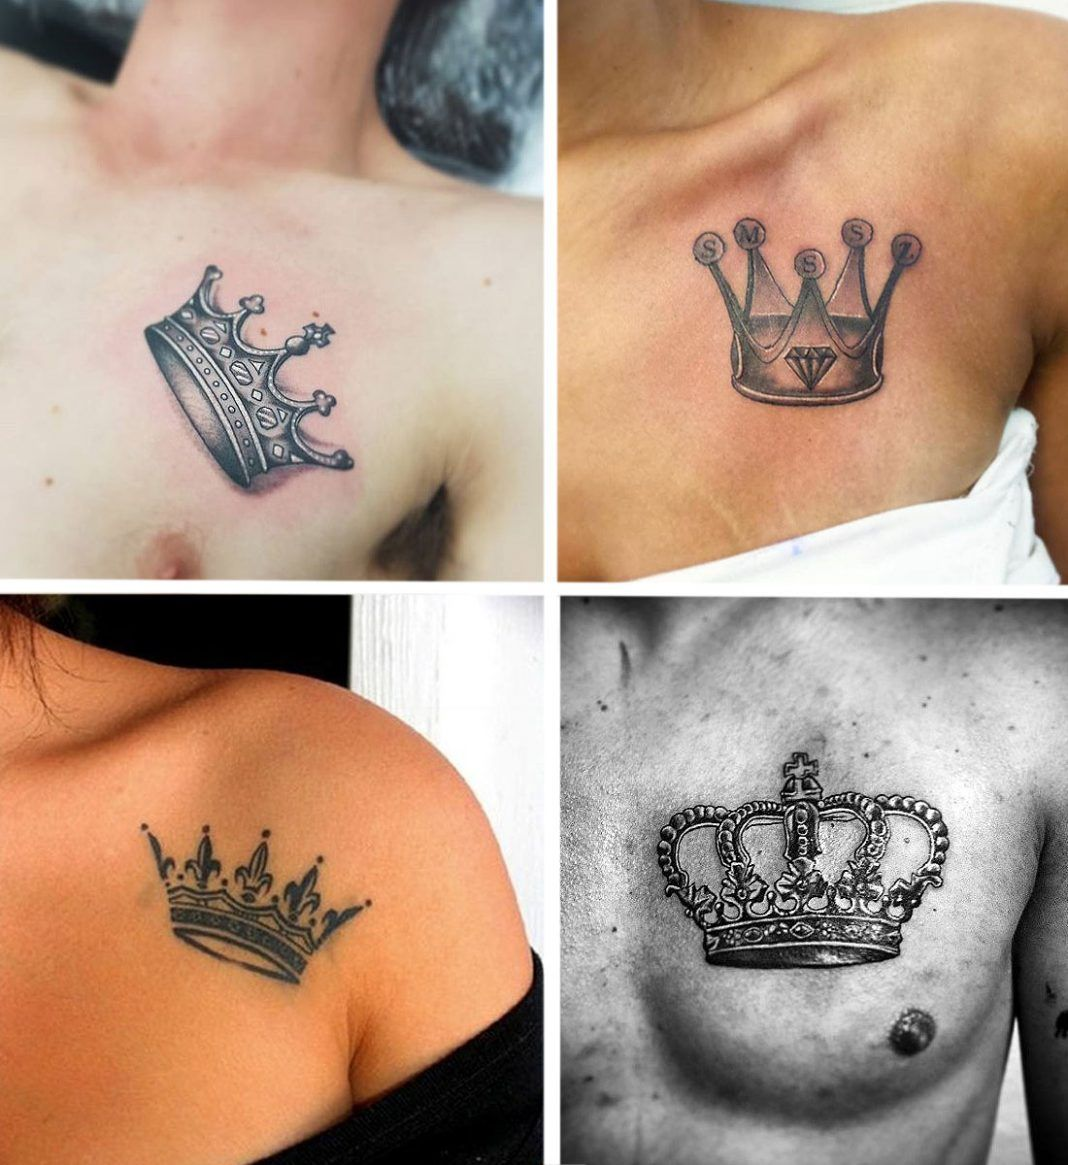 King And Queen Tattoos Best Couple Tattoo Ideas Crown Tattoos For Women Crown Tattoo Design Queen Tattoo King queen tattoo hd images